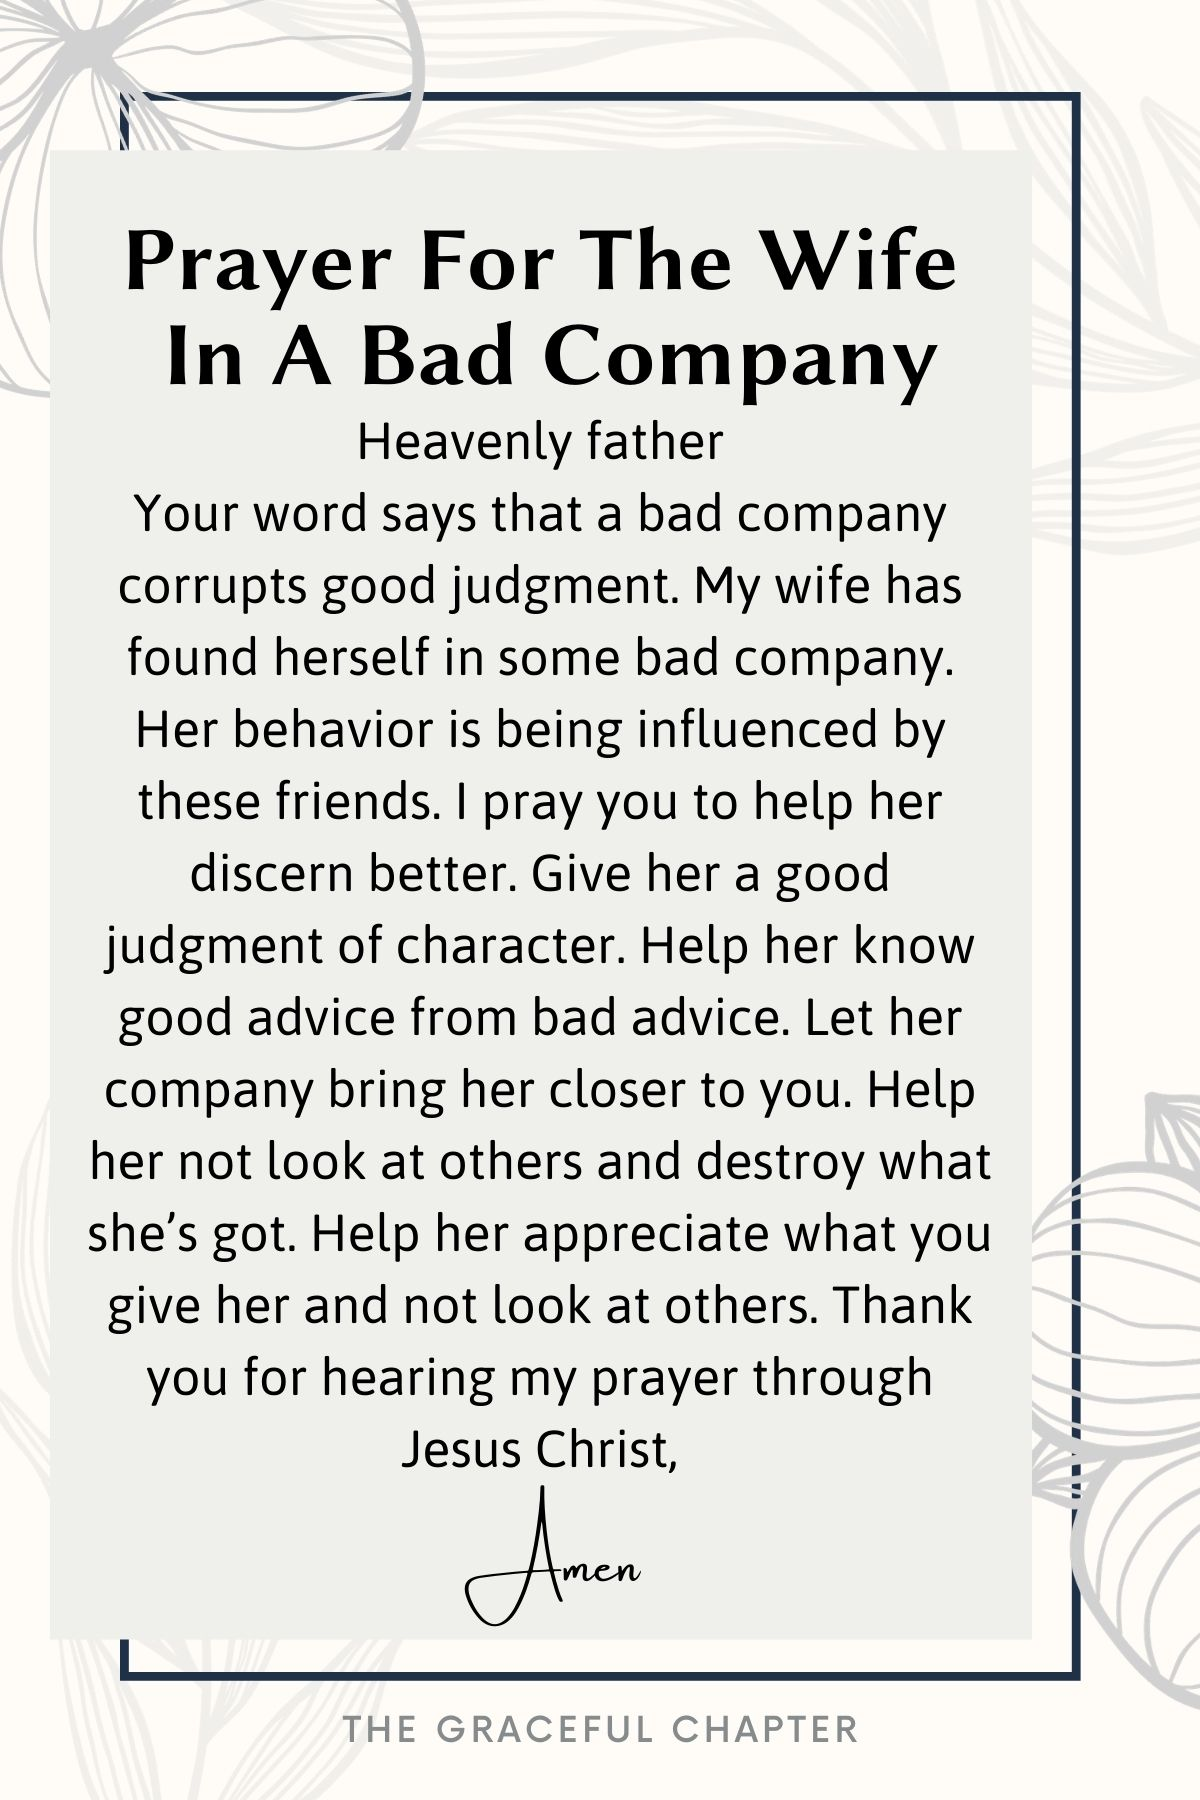 Prayer for the wife in a bad company